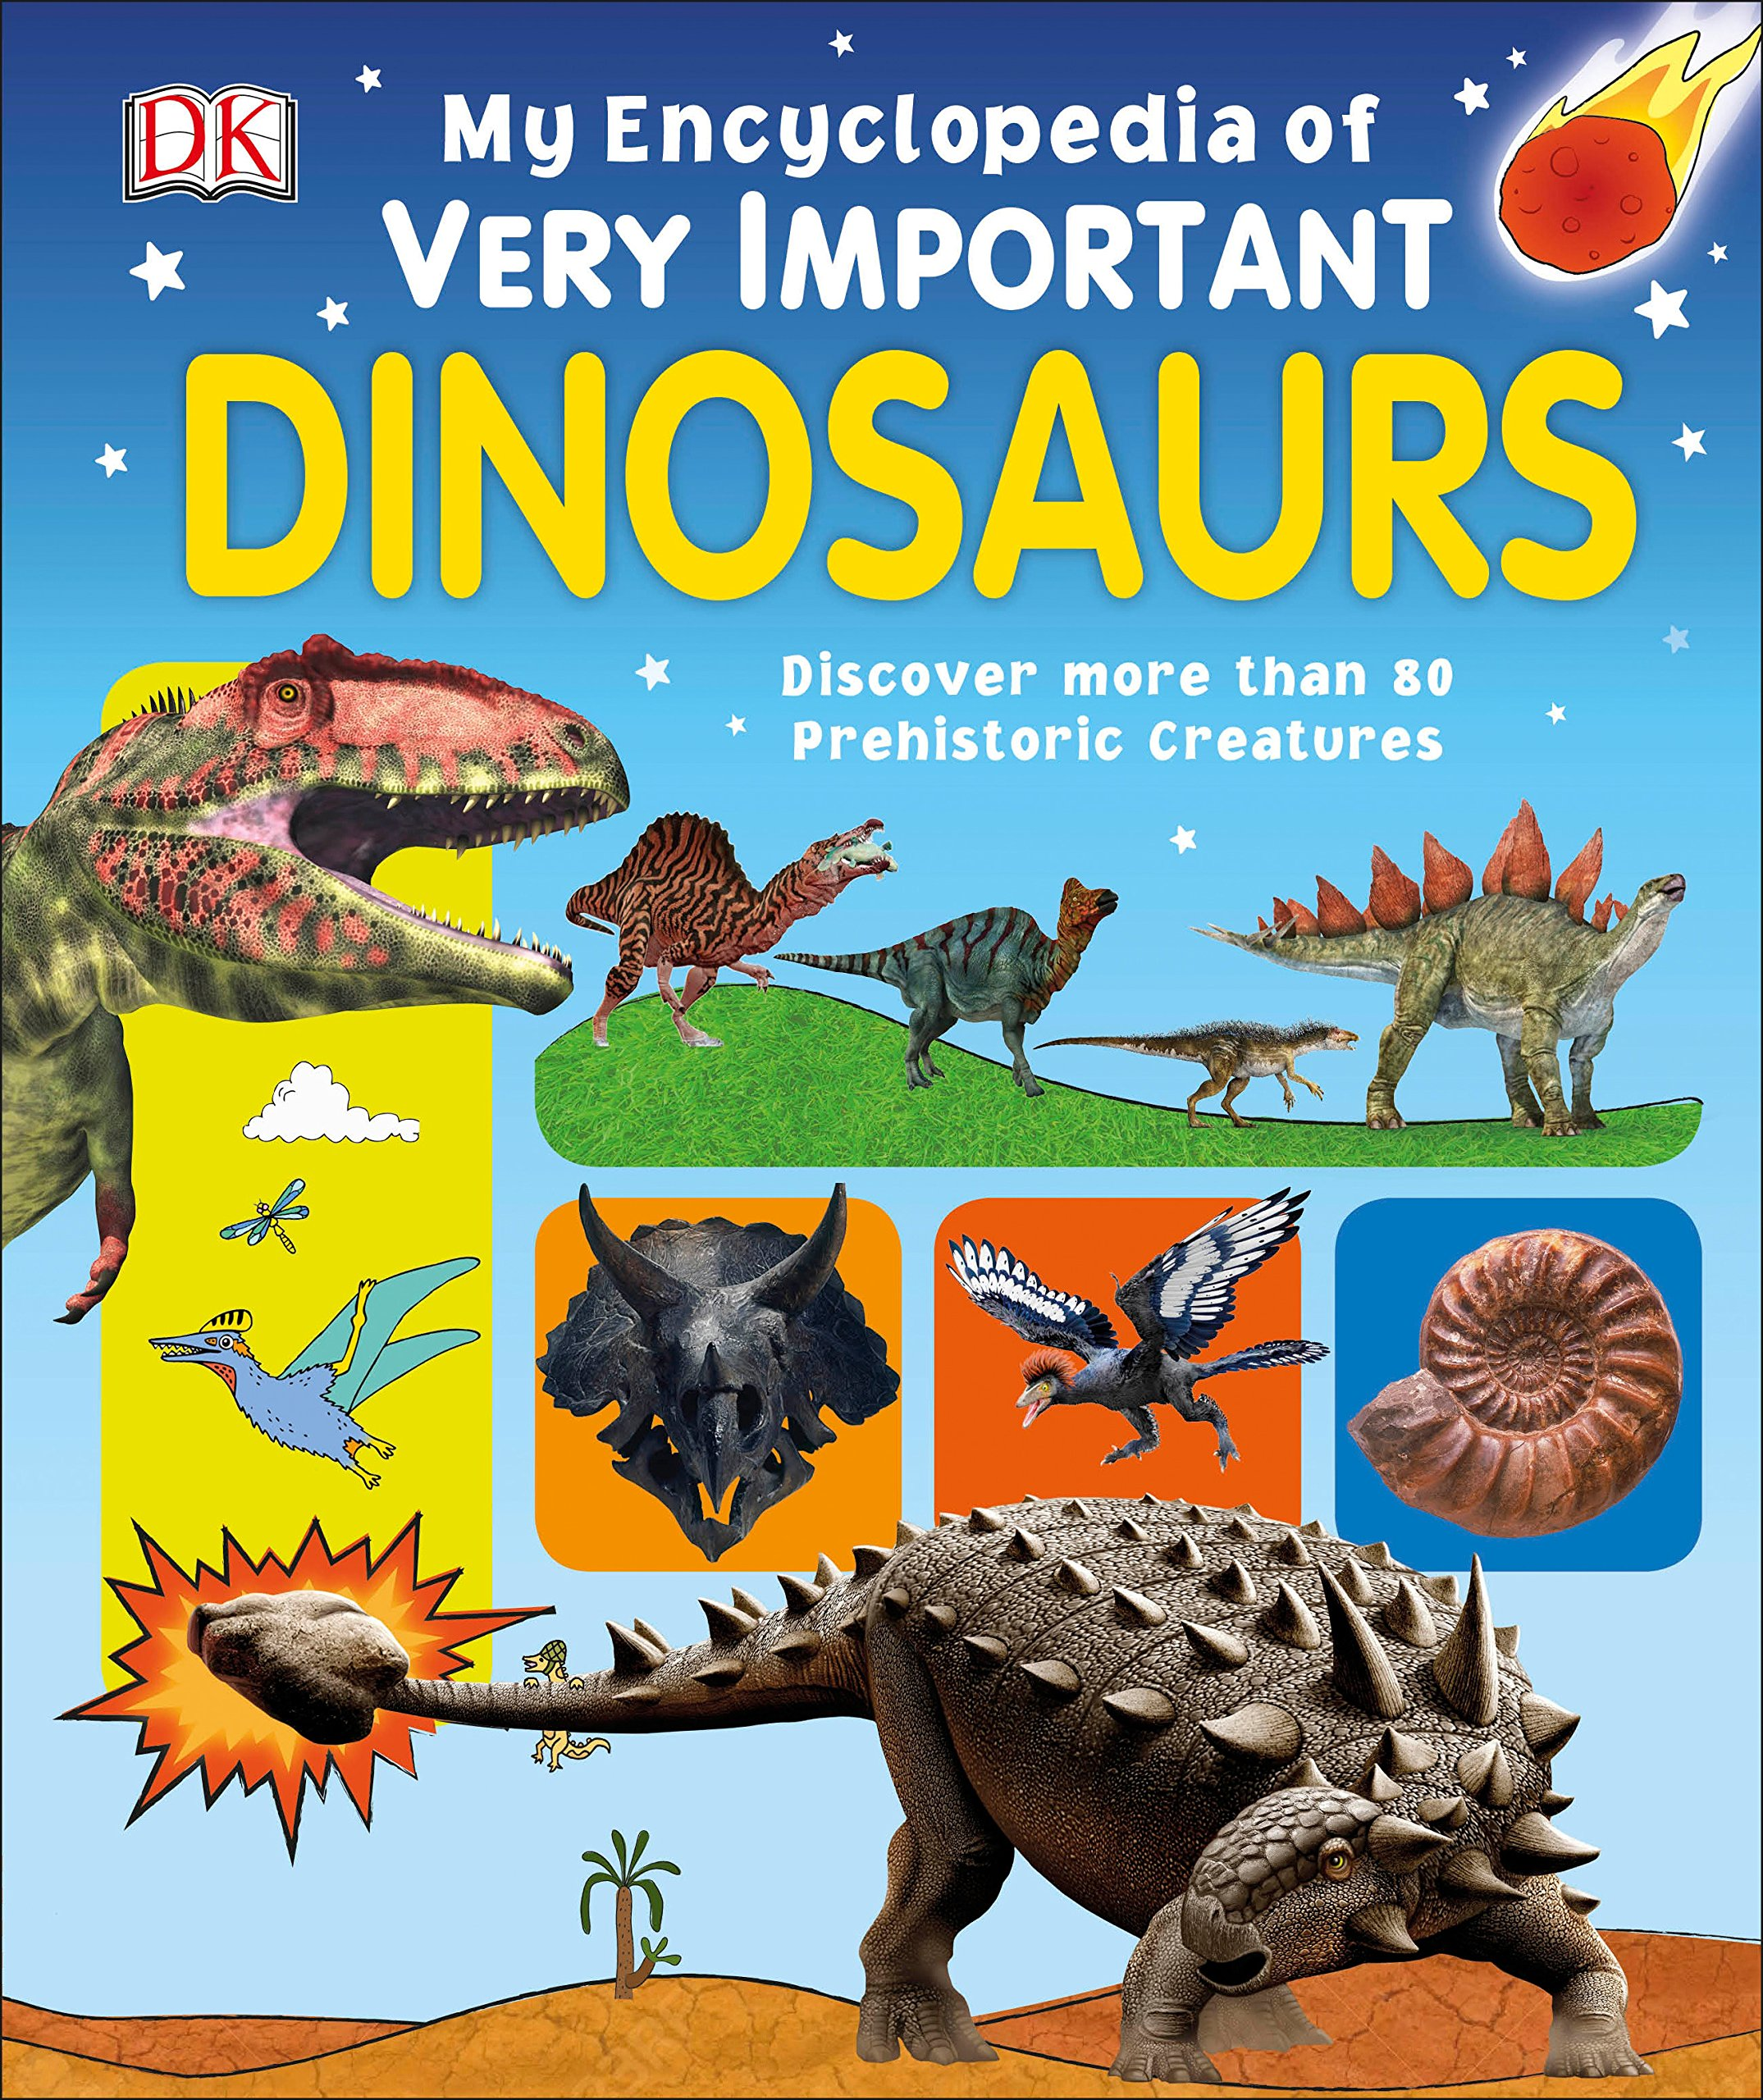 my-encyclopedia-of-very-important-dinosaurs-discover-more-than-80-prehistoric-creatures